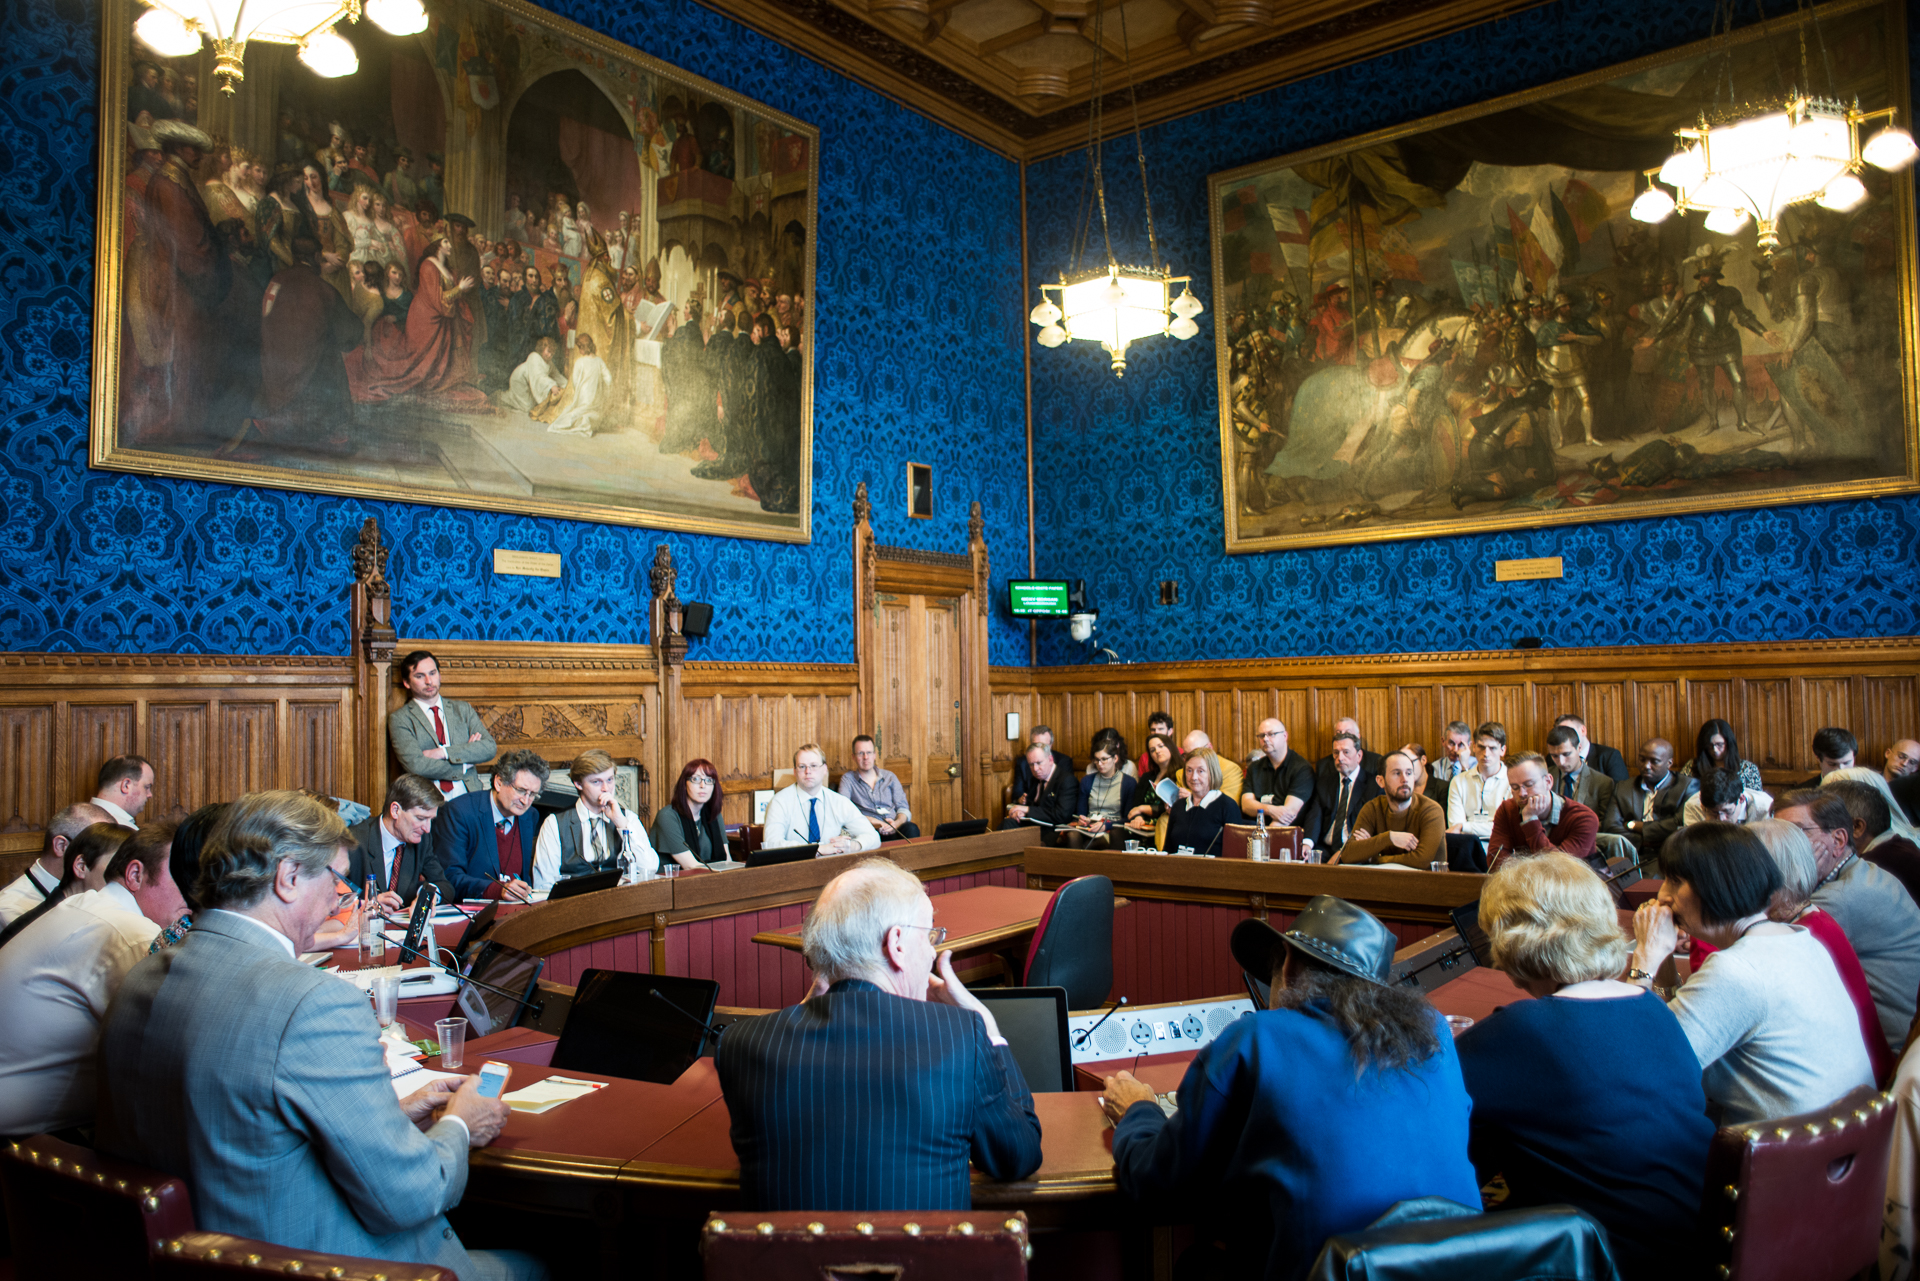 Democracy Matters - Electoral Reform Society event at the Houses of Parliament